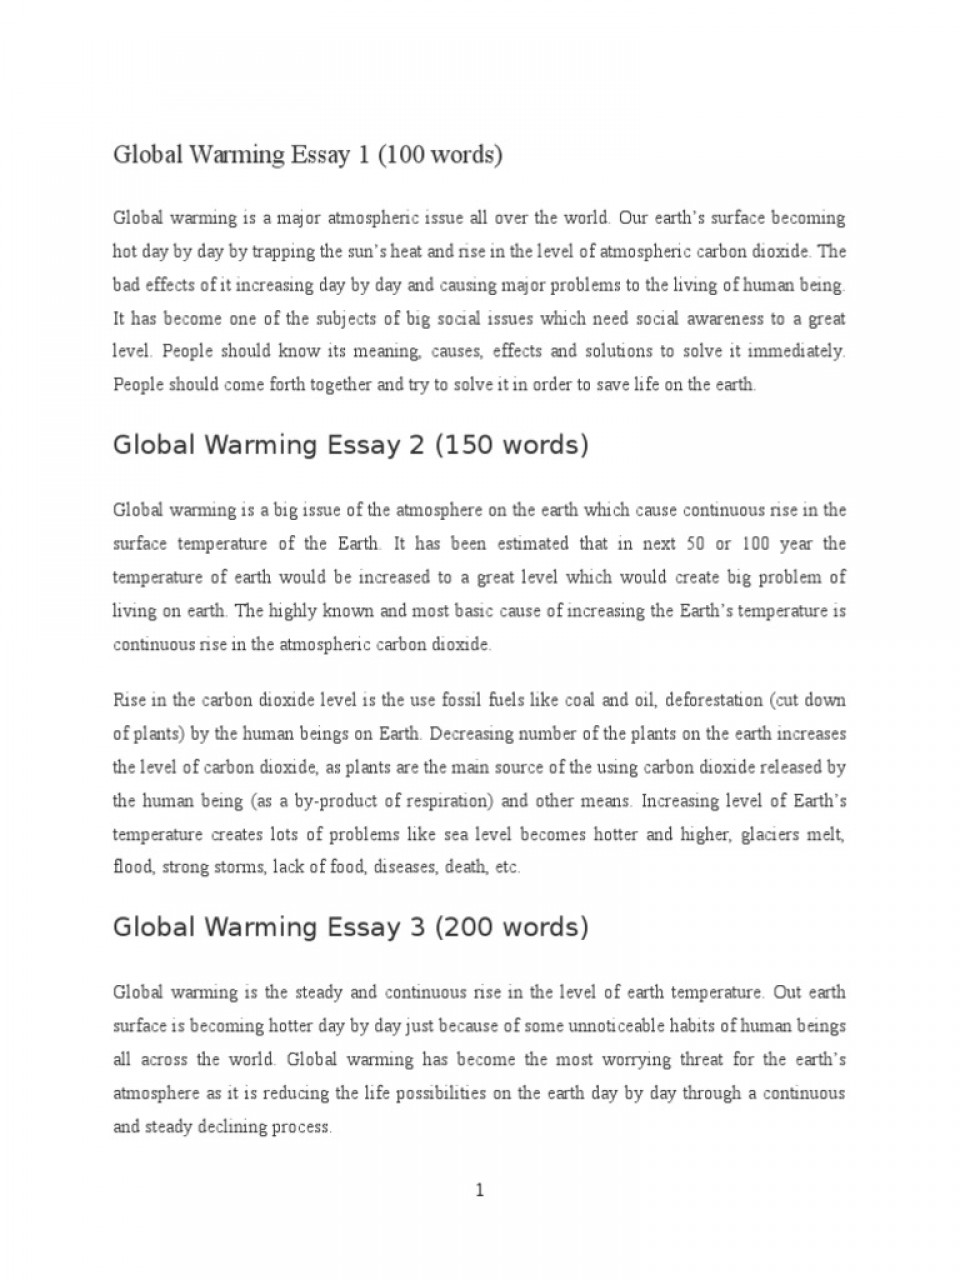 008 Global Warming Essay 1 5882e593b6d87f85288b46ba Unusual Paper Outline Catchy Titles For Ielts Band 9 960